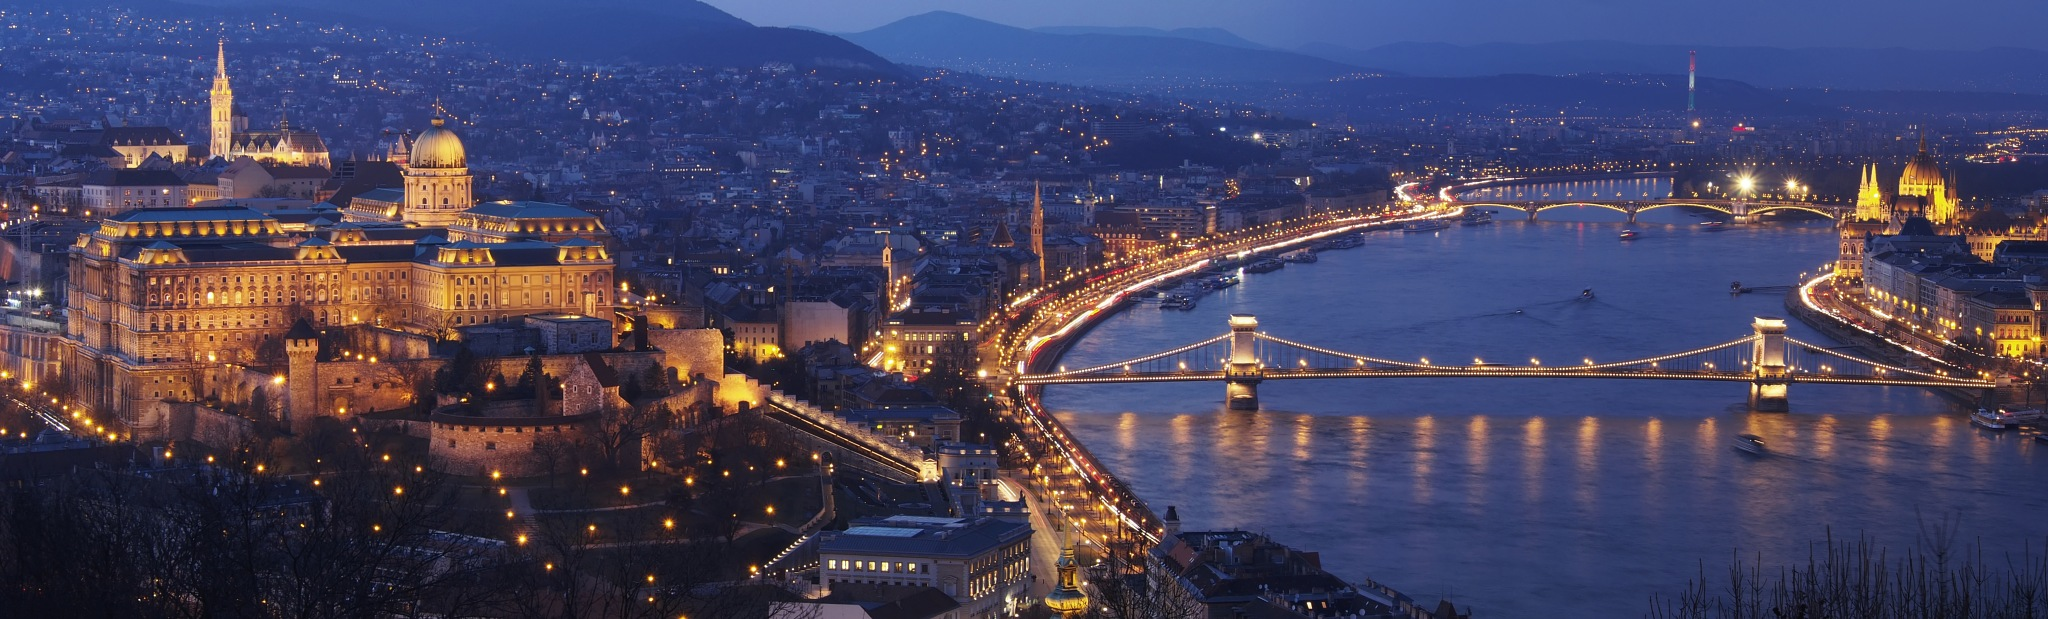 Budapest Blue Hour by Marcell Paál Hesperus